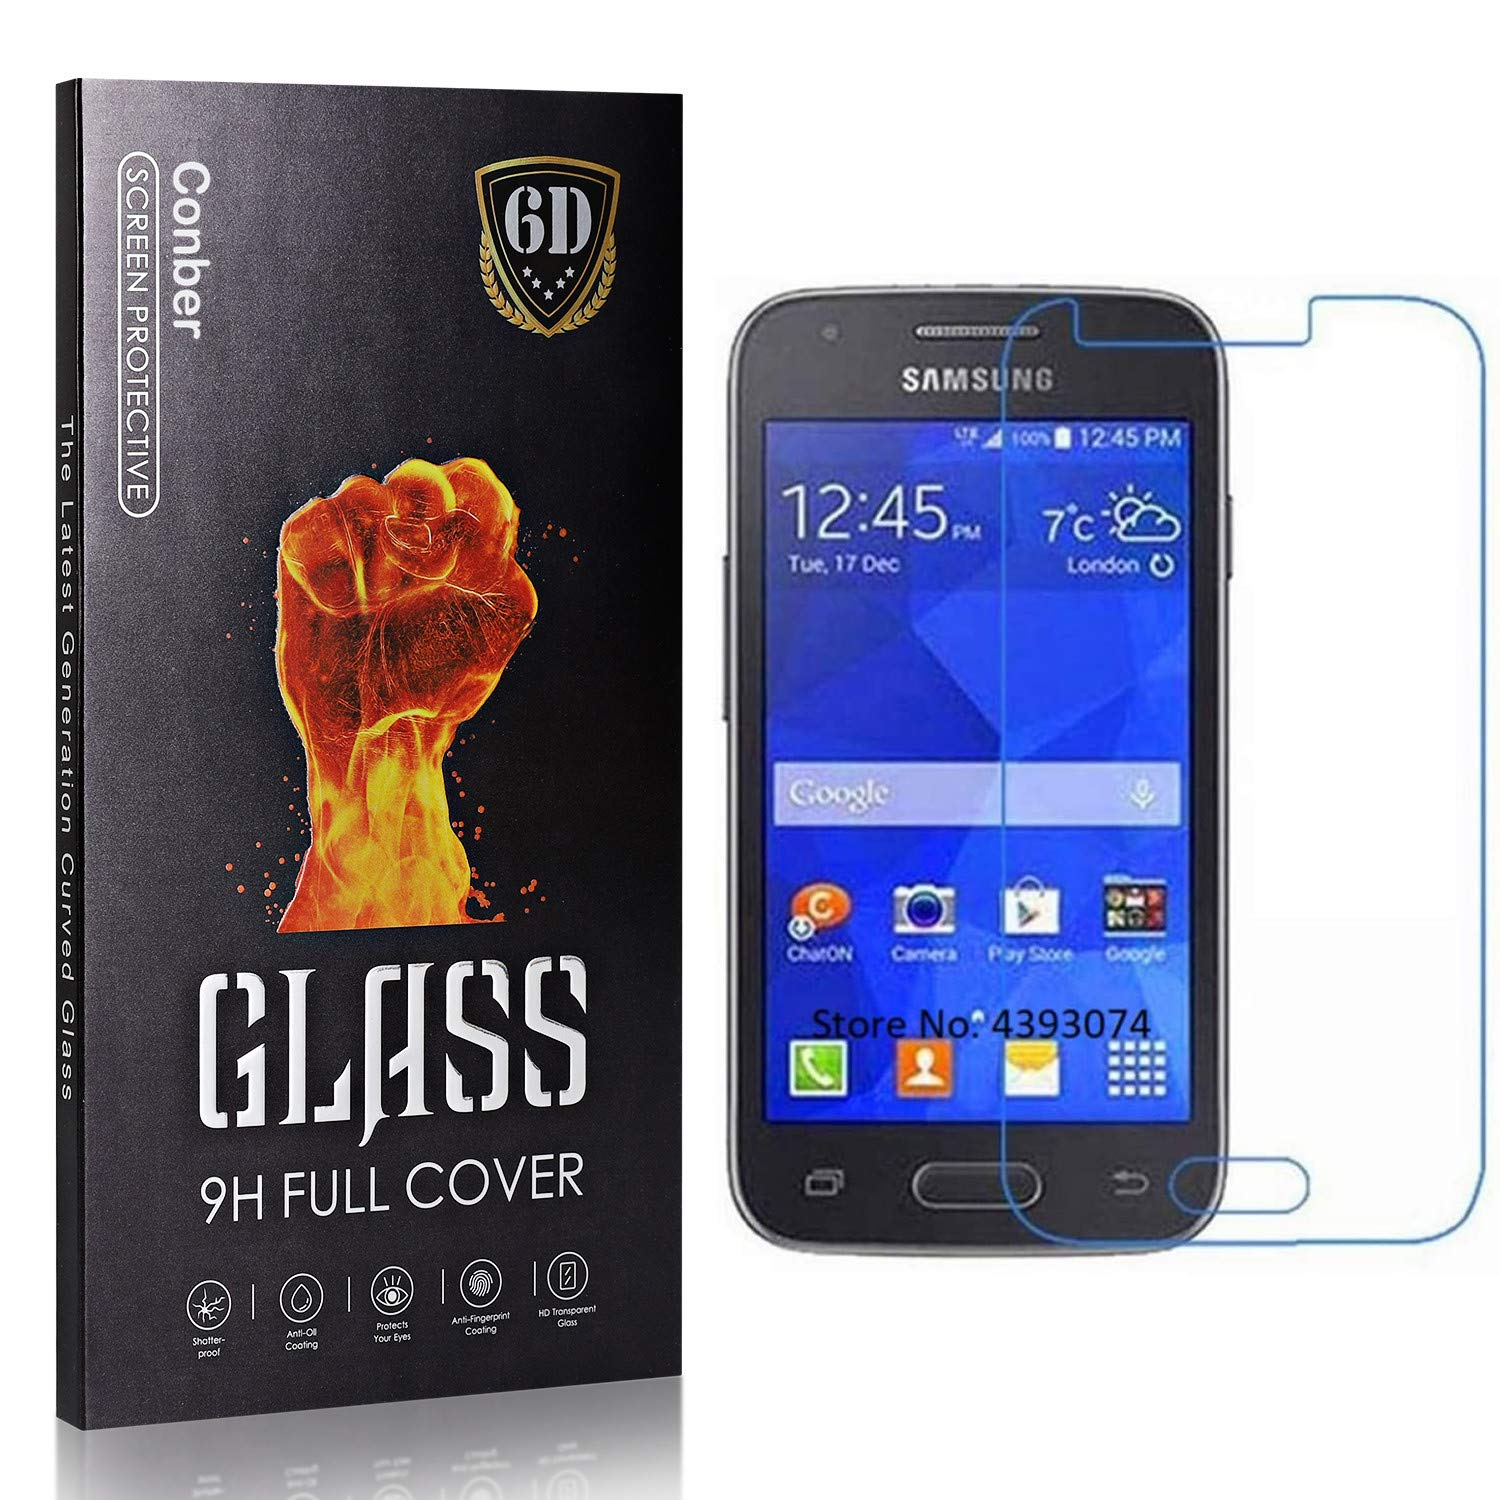 Conber 1 Pack Screen Protector for Galaxy Ranking TOP19 Max 63% OFF Samsung 4 G313 Ace